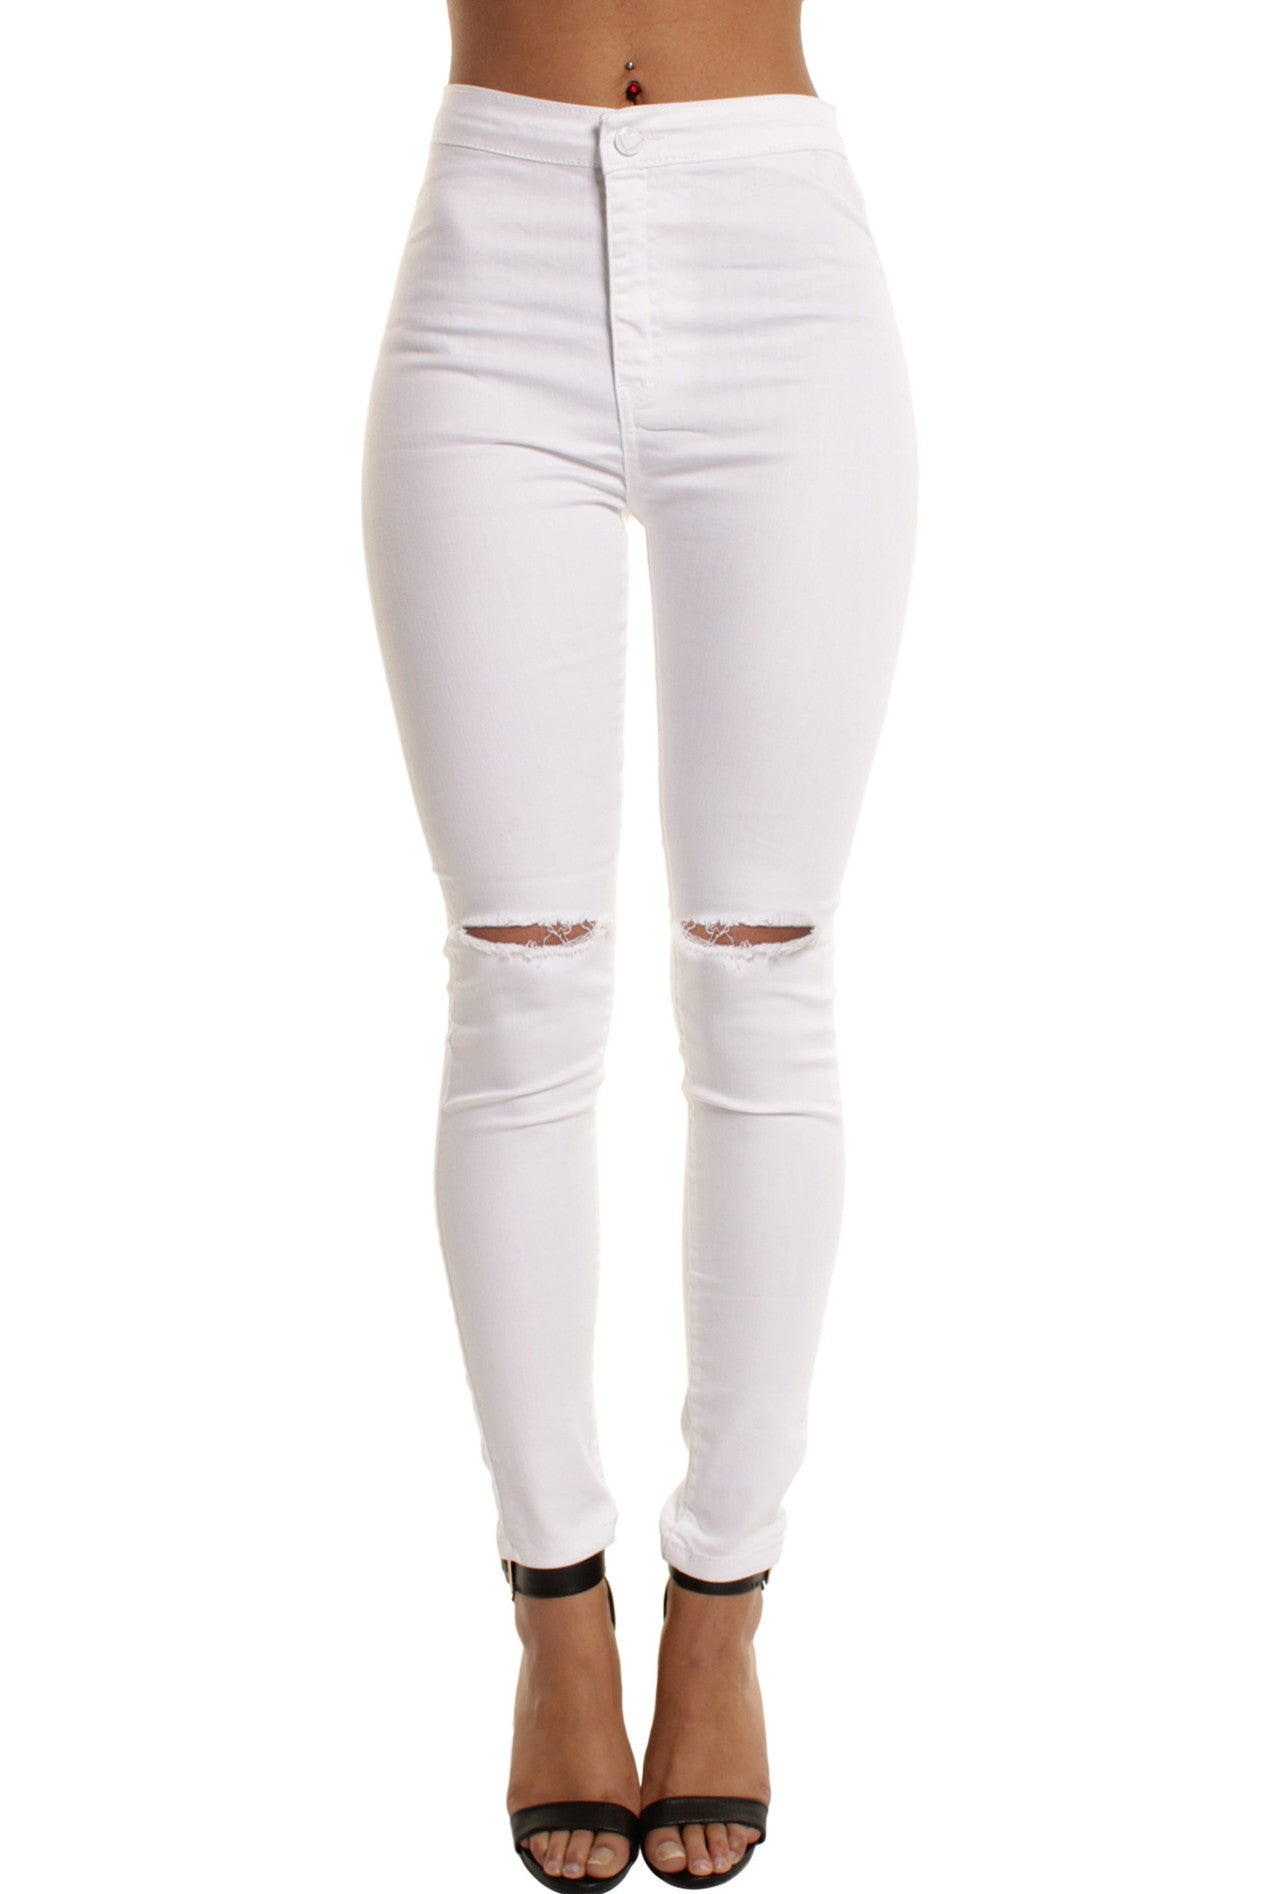 Collection High Waist White Jeans Pictures - Reikian